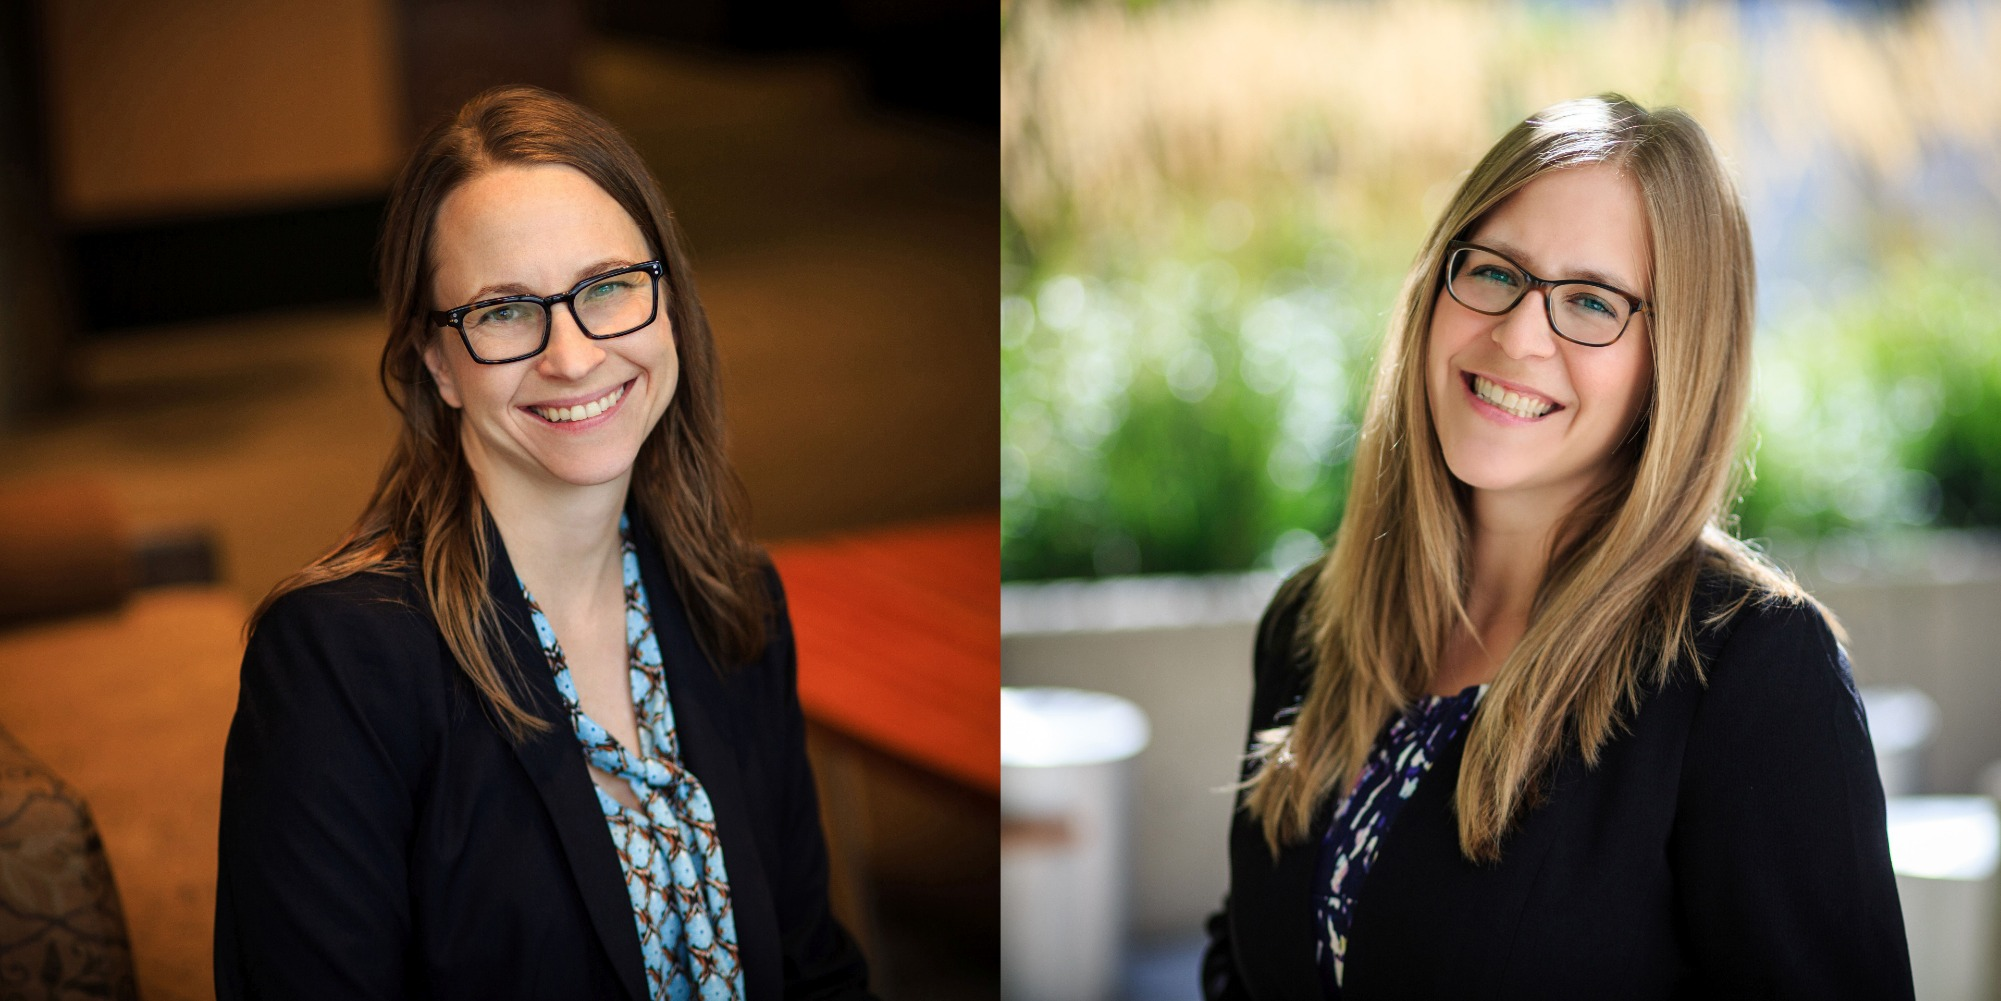 Posted on January 01, 2019 by McNaul Ebel Nawrot & Helgren PLLC | Theresa DeMonte and Claire Martirosian Named MENH Partners